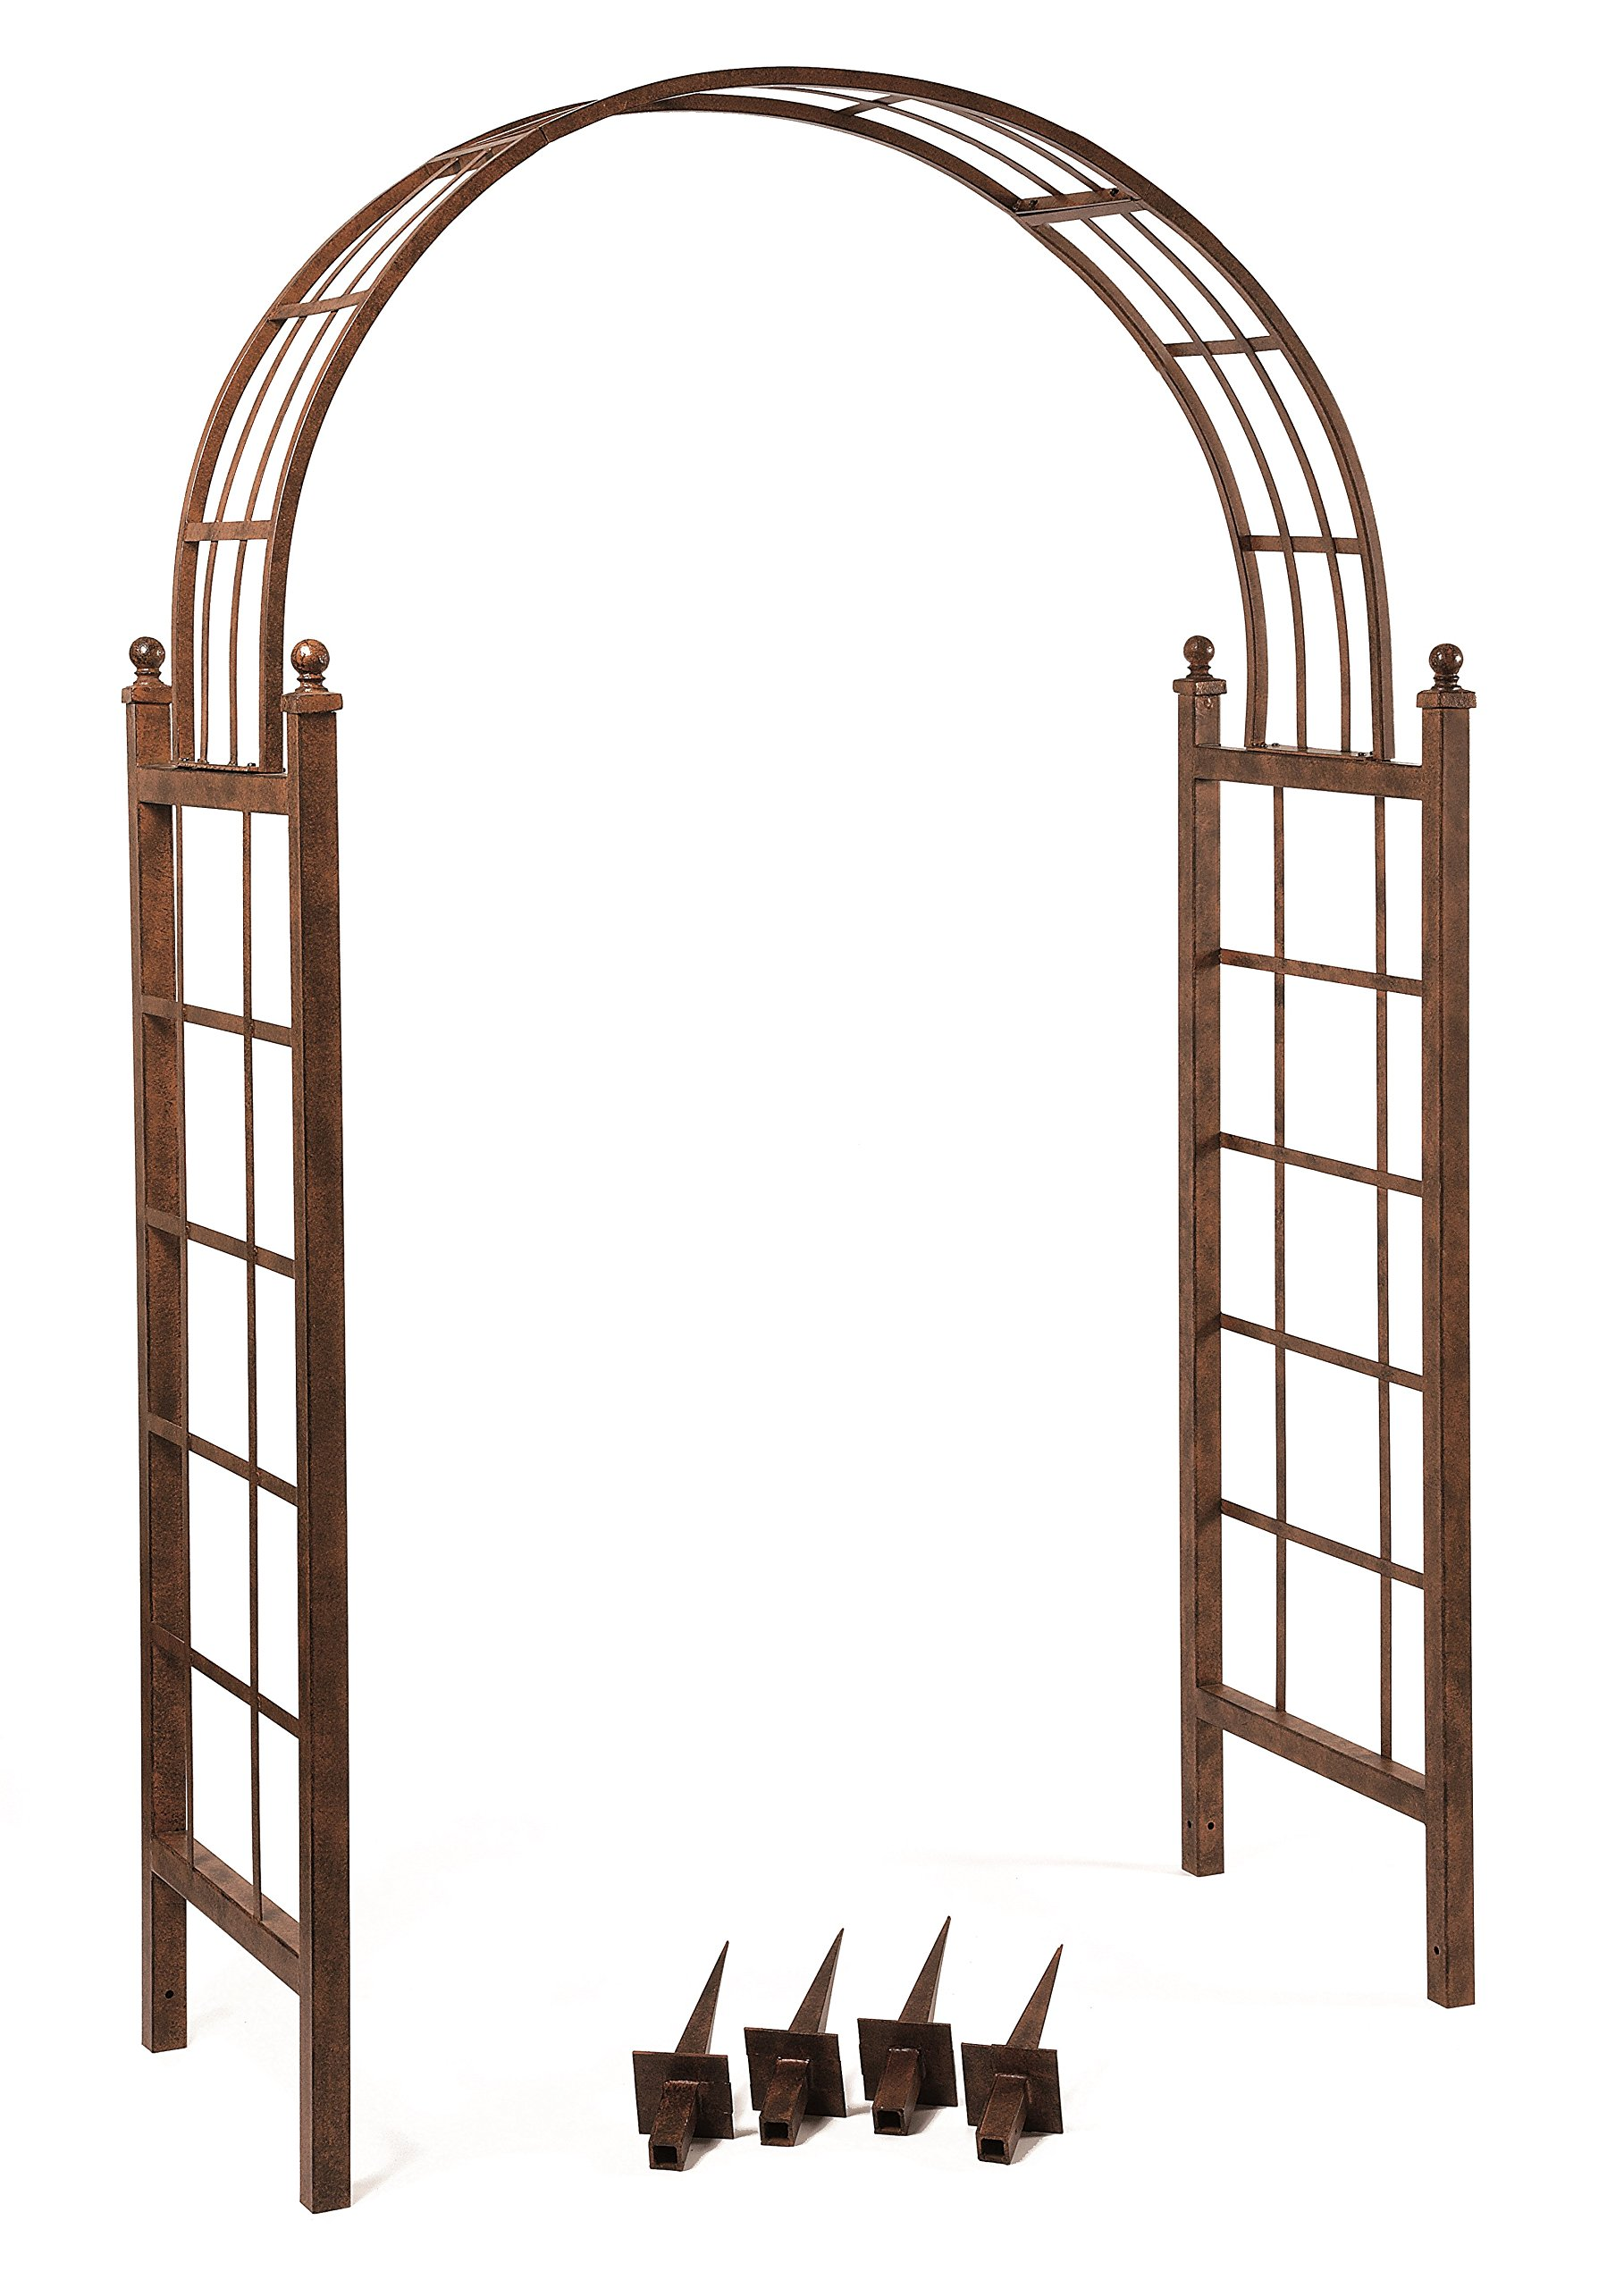 Deer Park AR114 Lattice Arch, Natural Patina, 87''H x 53''W x 23''D, Ground Stakes Included